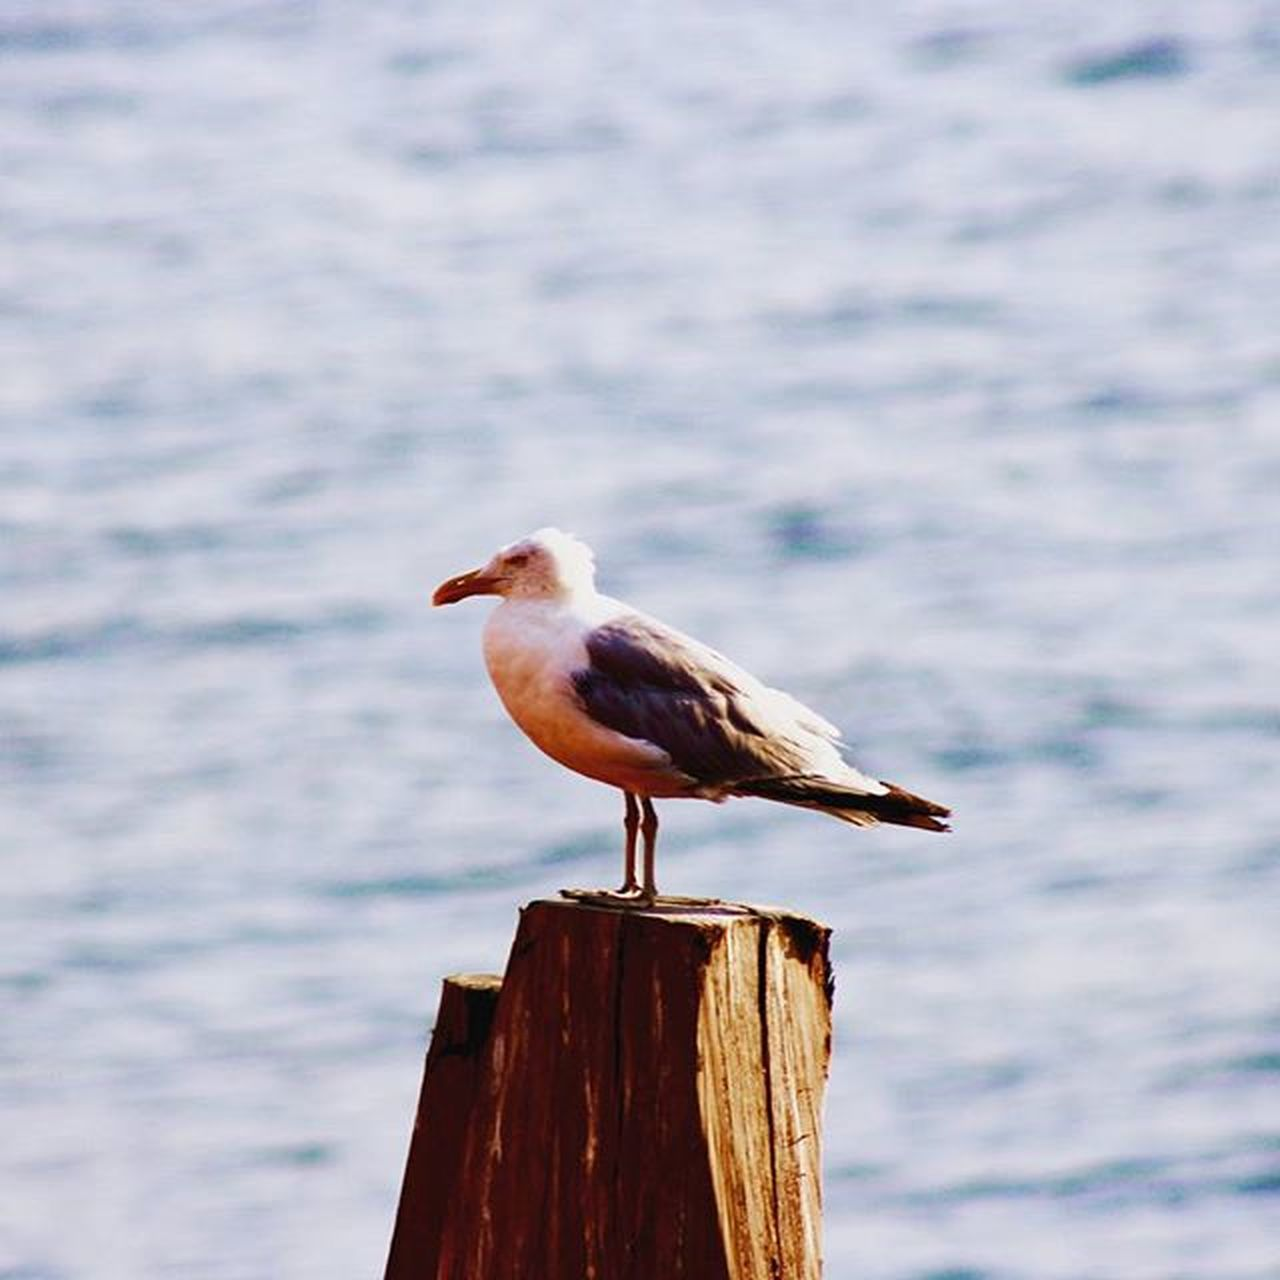 bird, animal, animal themes, animal wildlife, vertebrate, animals in the wild, perching, wood - material, one animal, water, post, no people, seagull, nature, wooden post, focus on foreground, day, side view, full length, outdoors, profile view